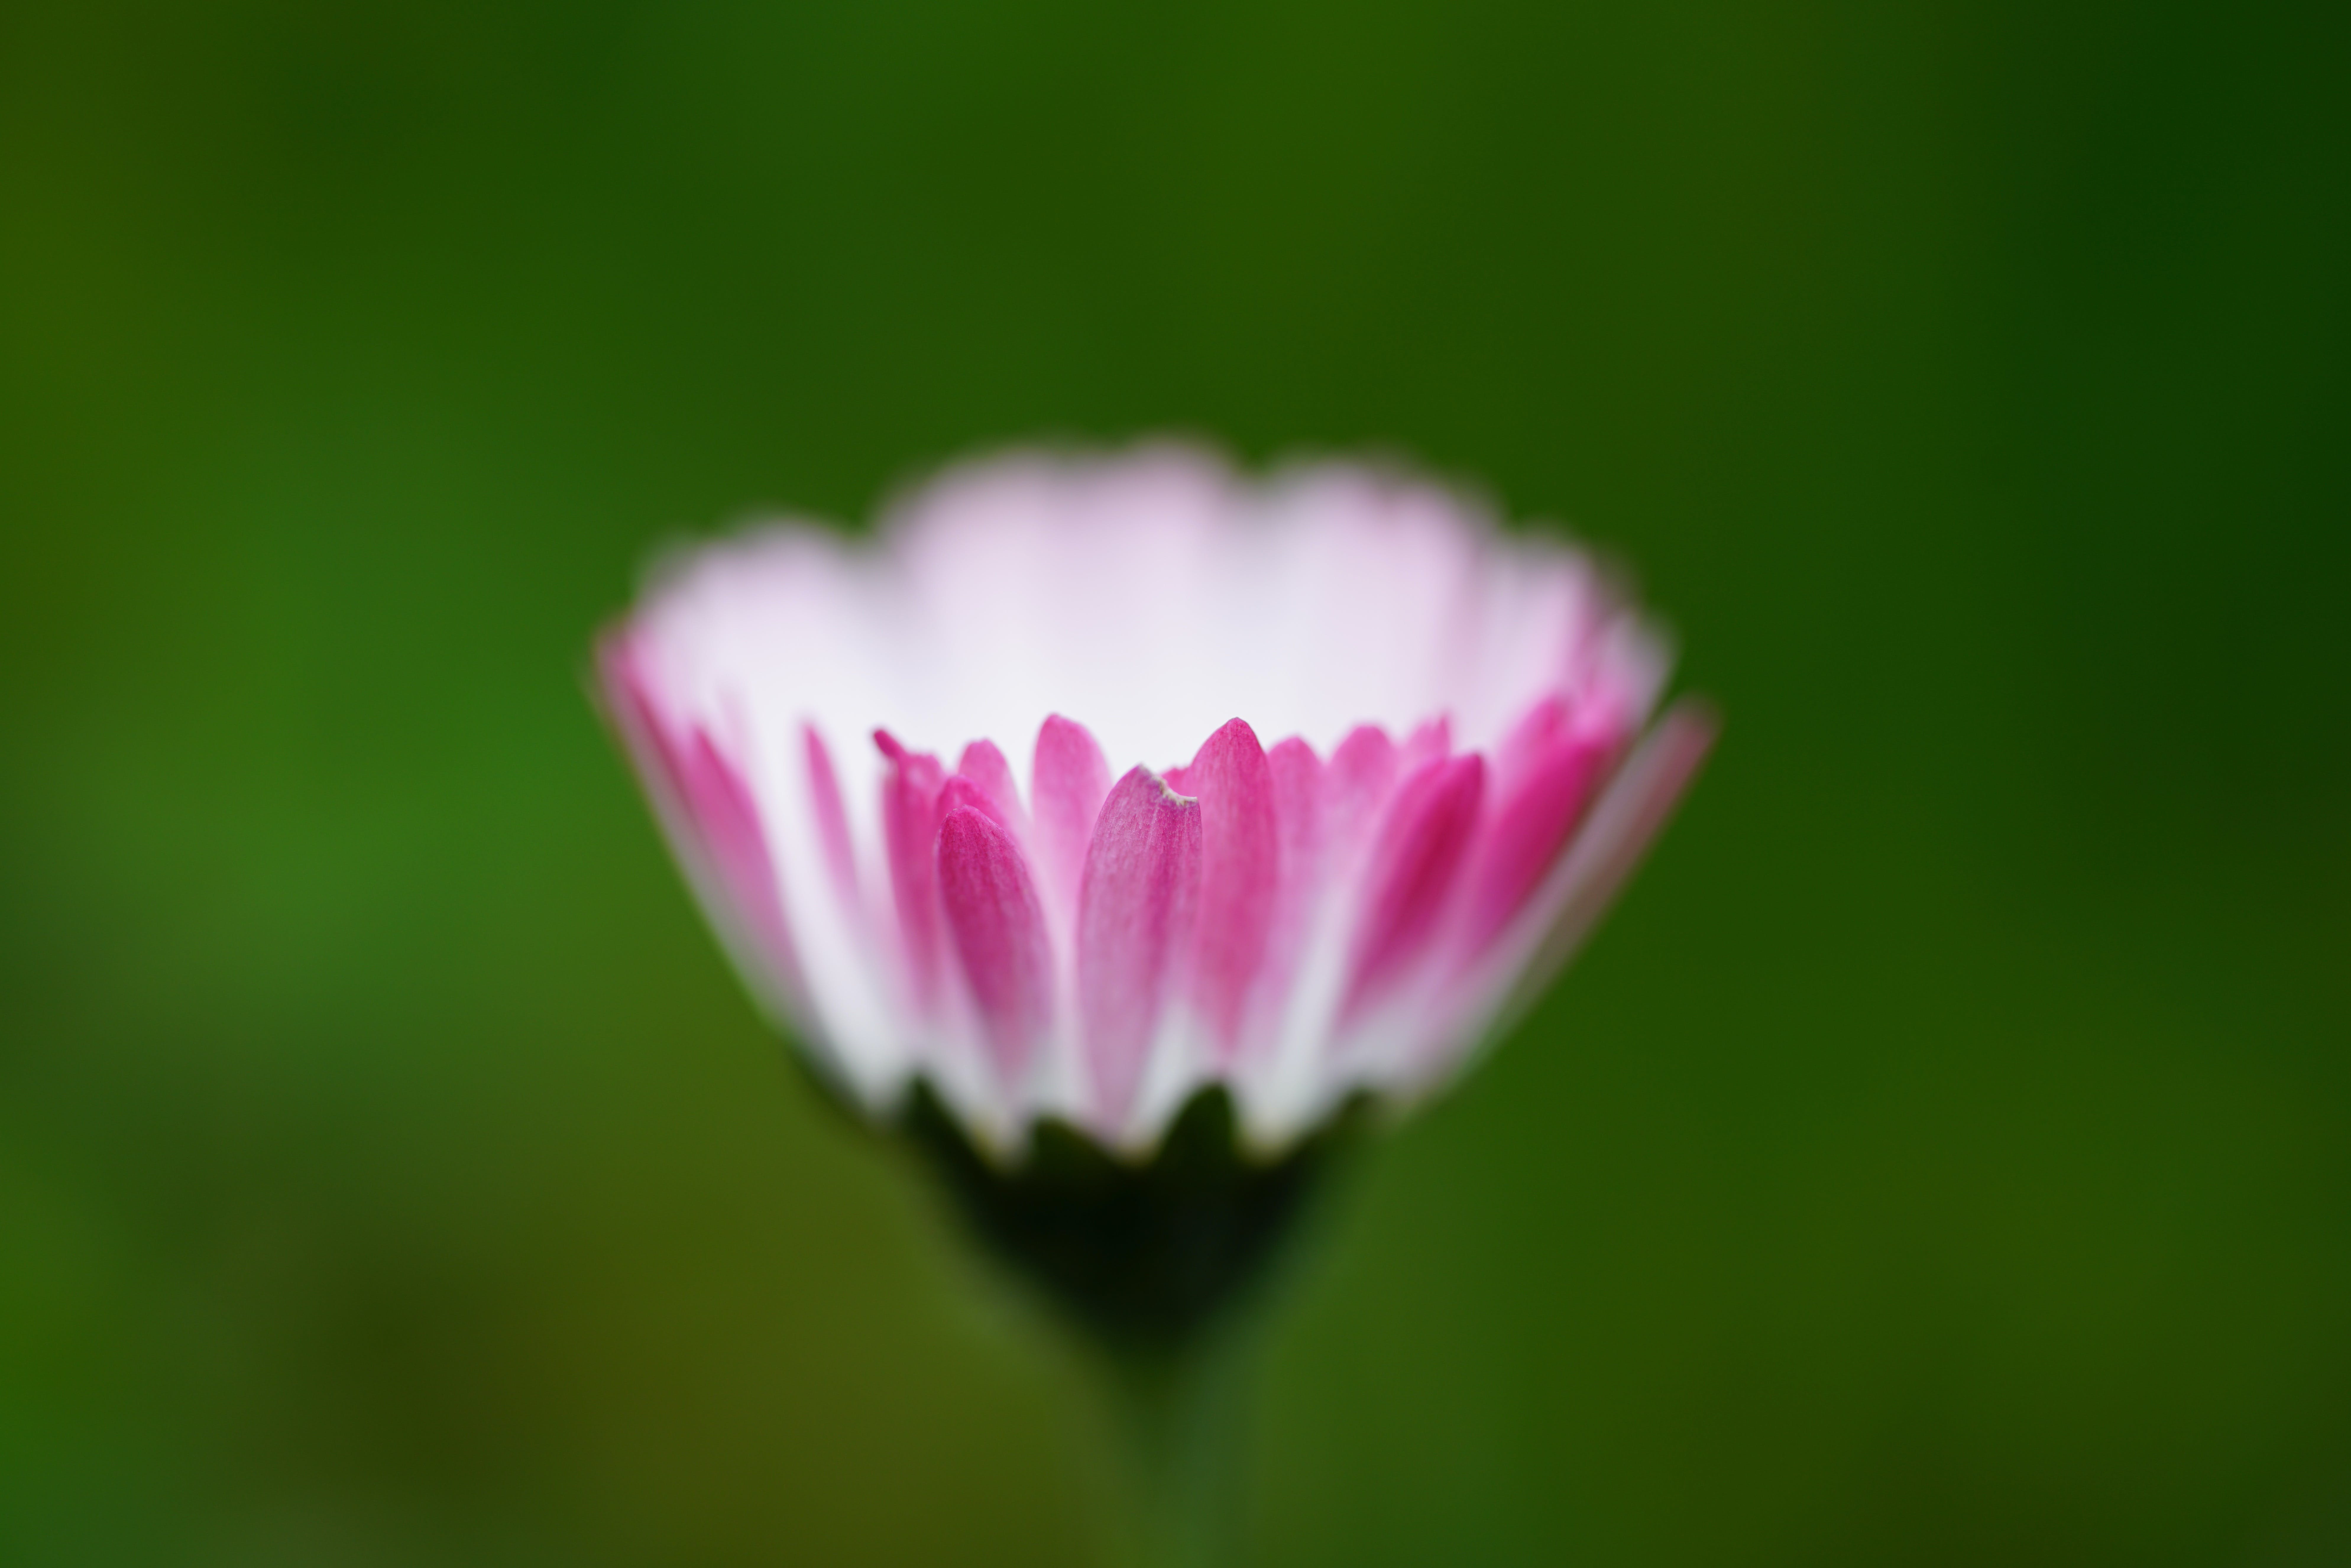 Tilt Shift Photography of Pink and White Multi Petaled Flower